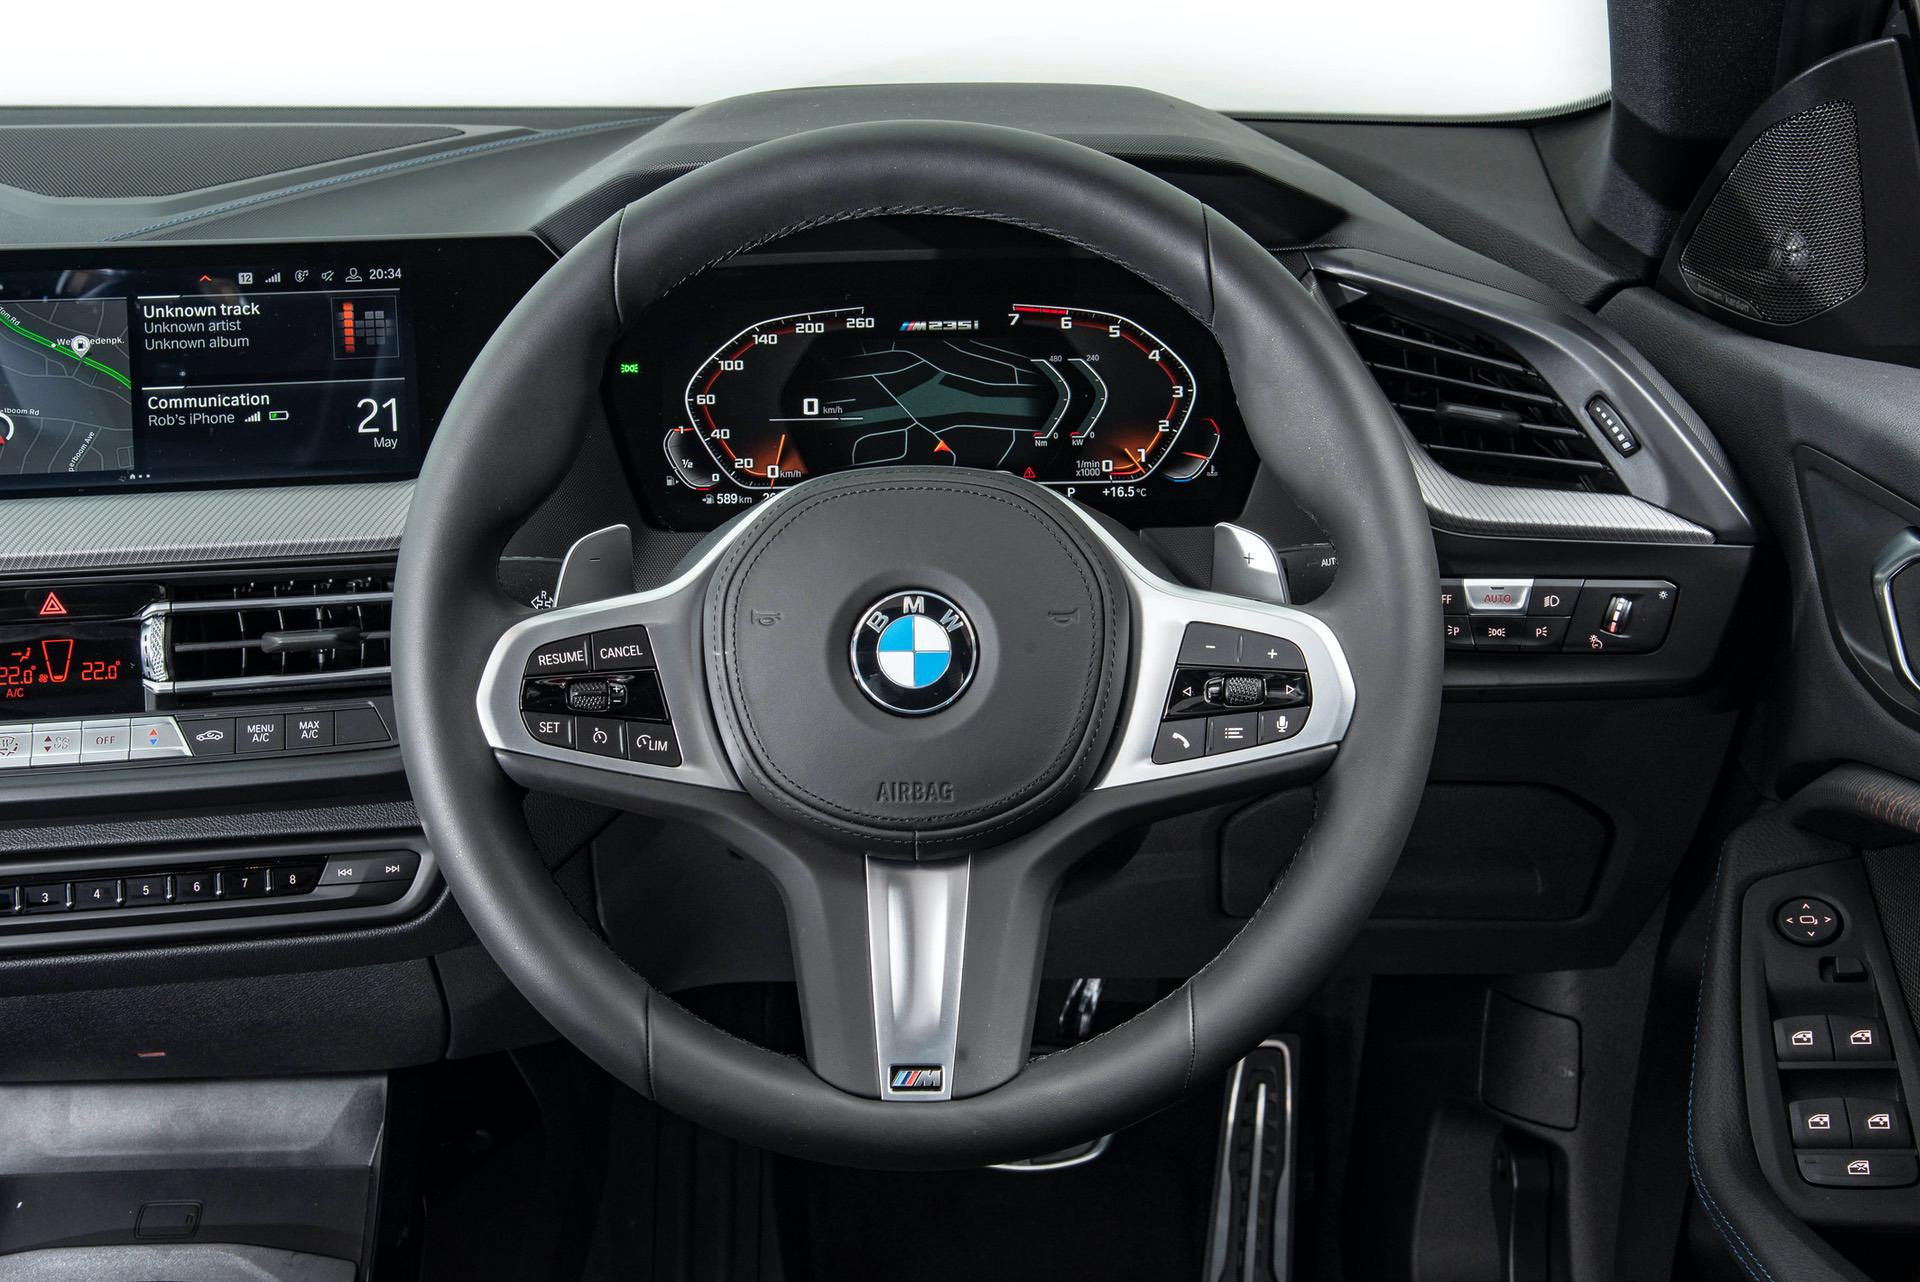 The new BMW 2 Series Gran Coupe launches in South Africa